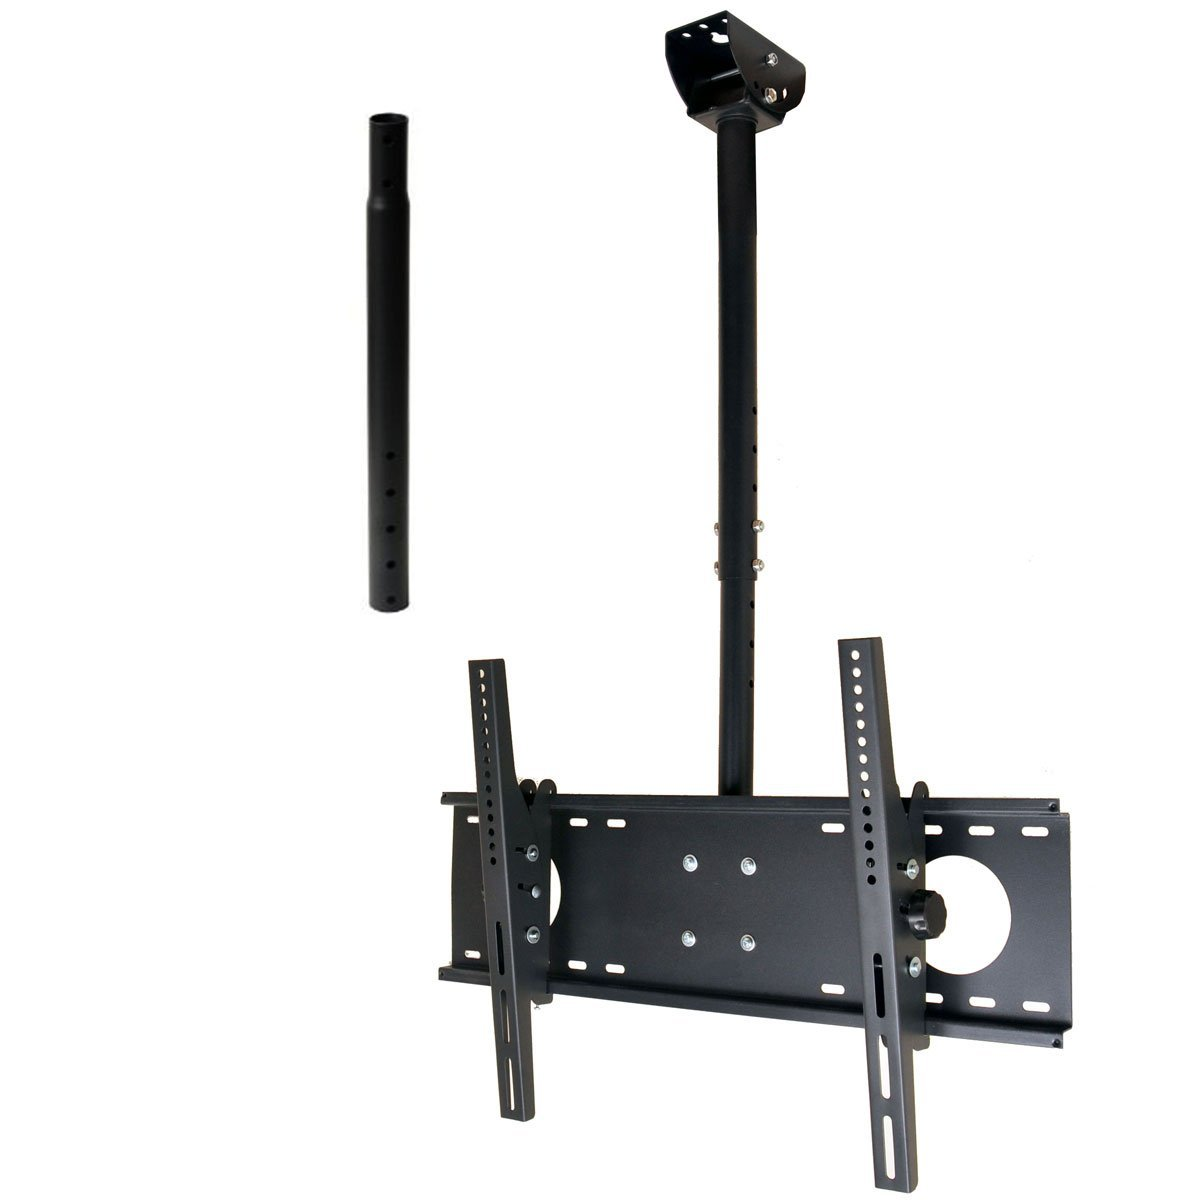 brackets to chr btech mount for pole mounts floor stand btftc chrome b ceiling up monitor tech wall products